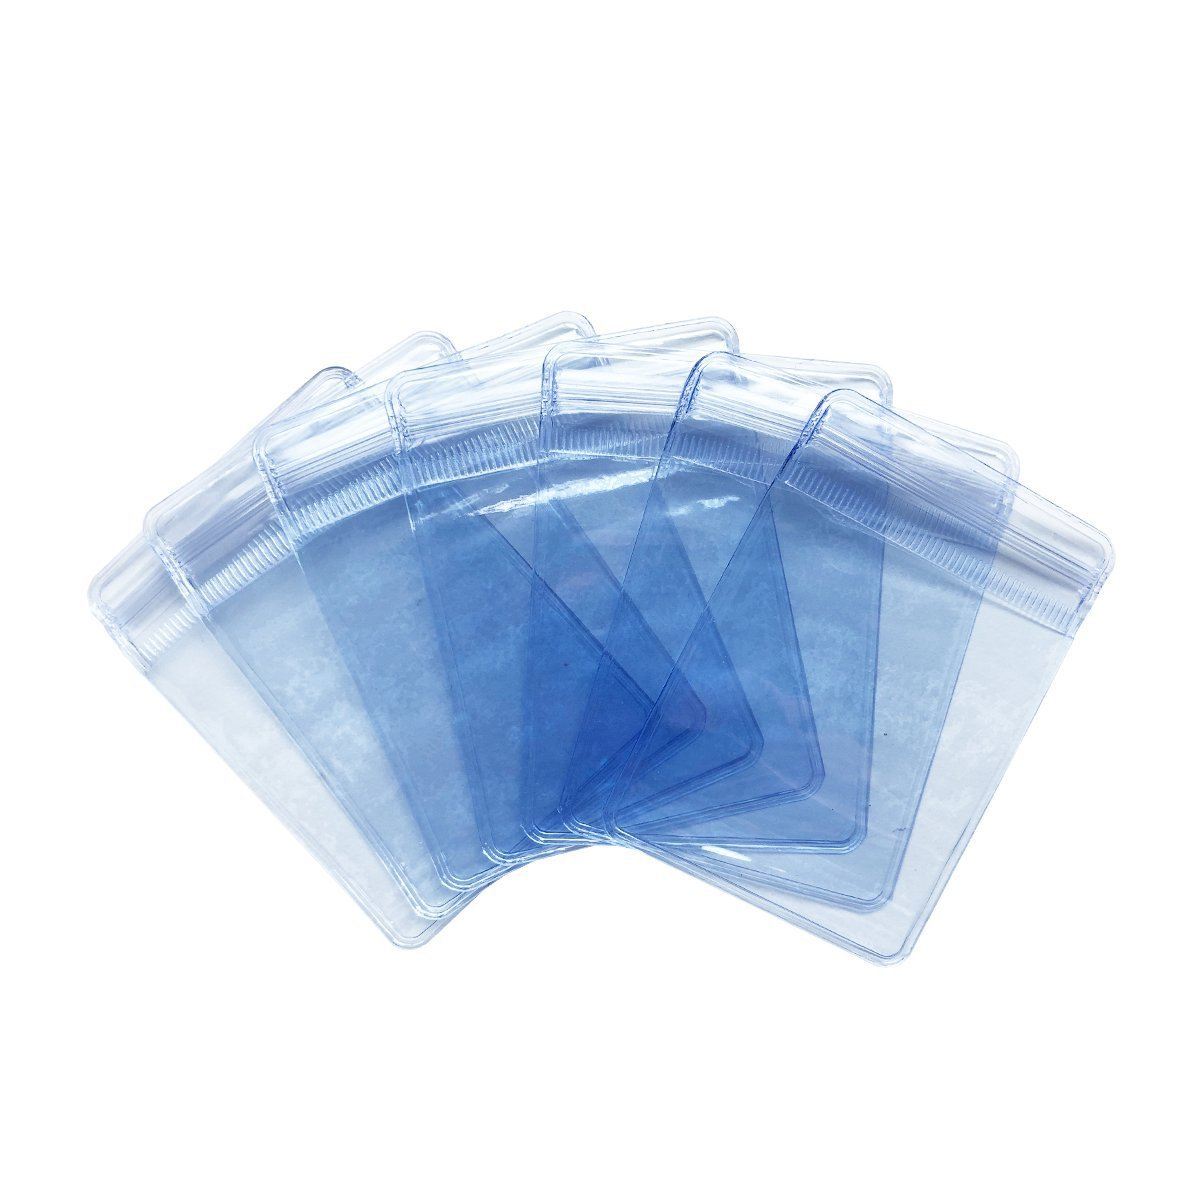 Jewelry Bag 100 PCS PVC Zipper Bags 2 x 2.8 INCH Transparent Jewellery Packaging Pouch Thick Airtight Storage Sack (2 x 2.8 INCH)